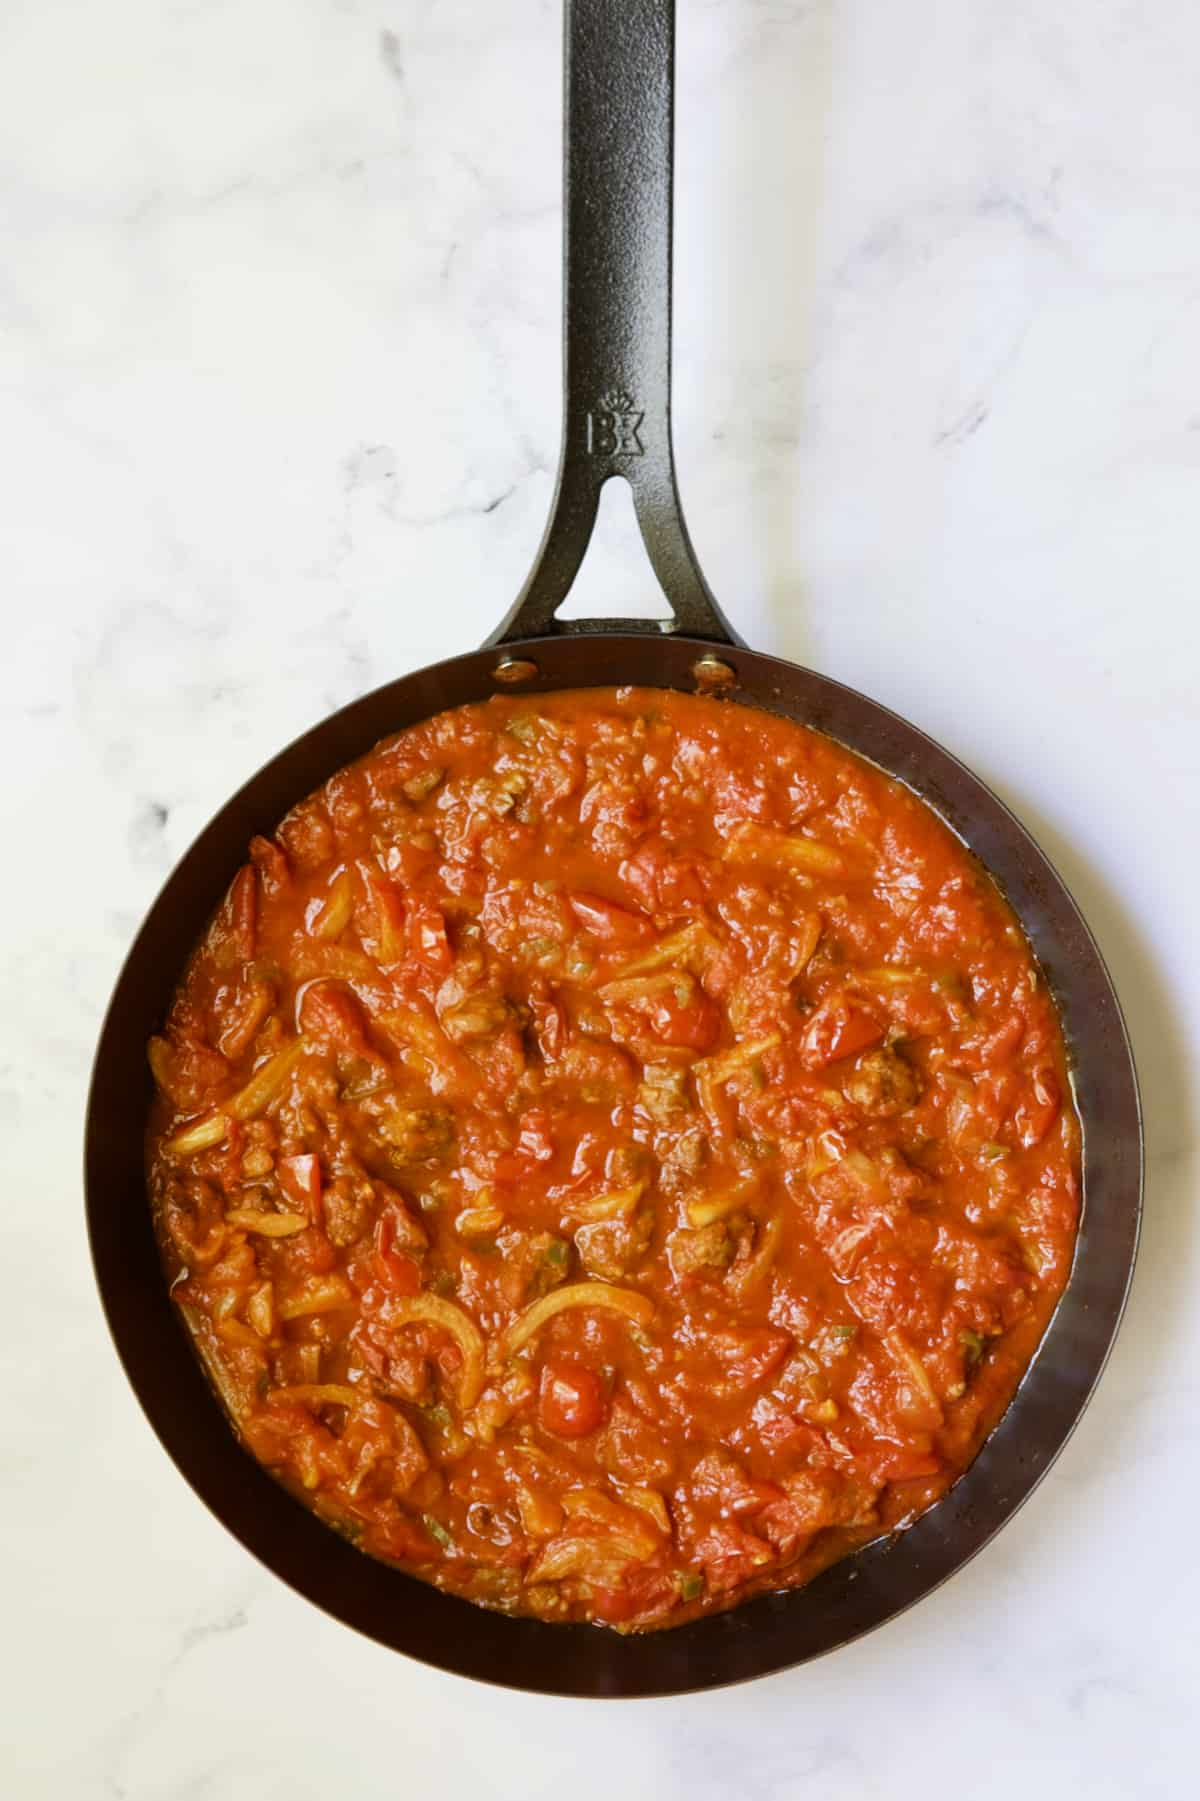 Tomato sauce with sausage in black skillet.